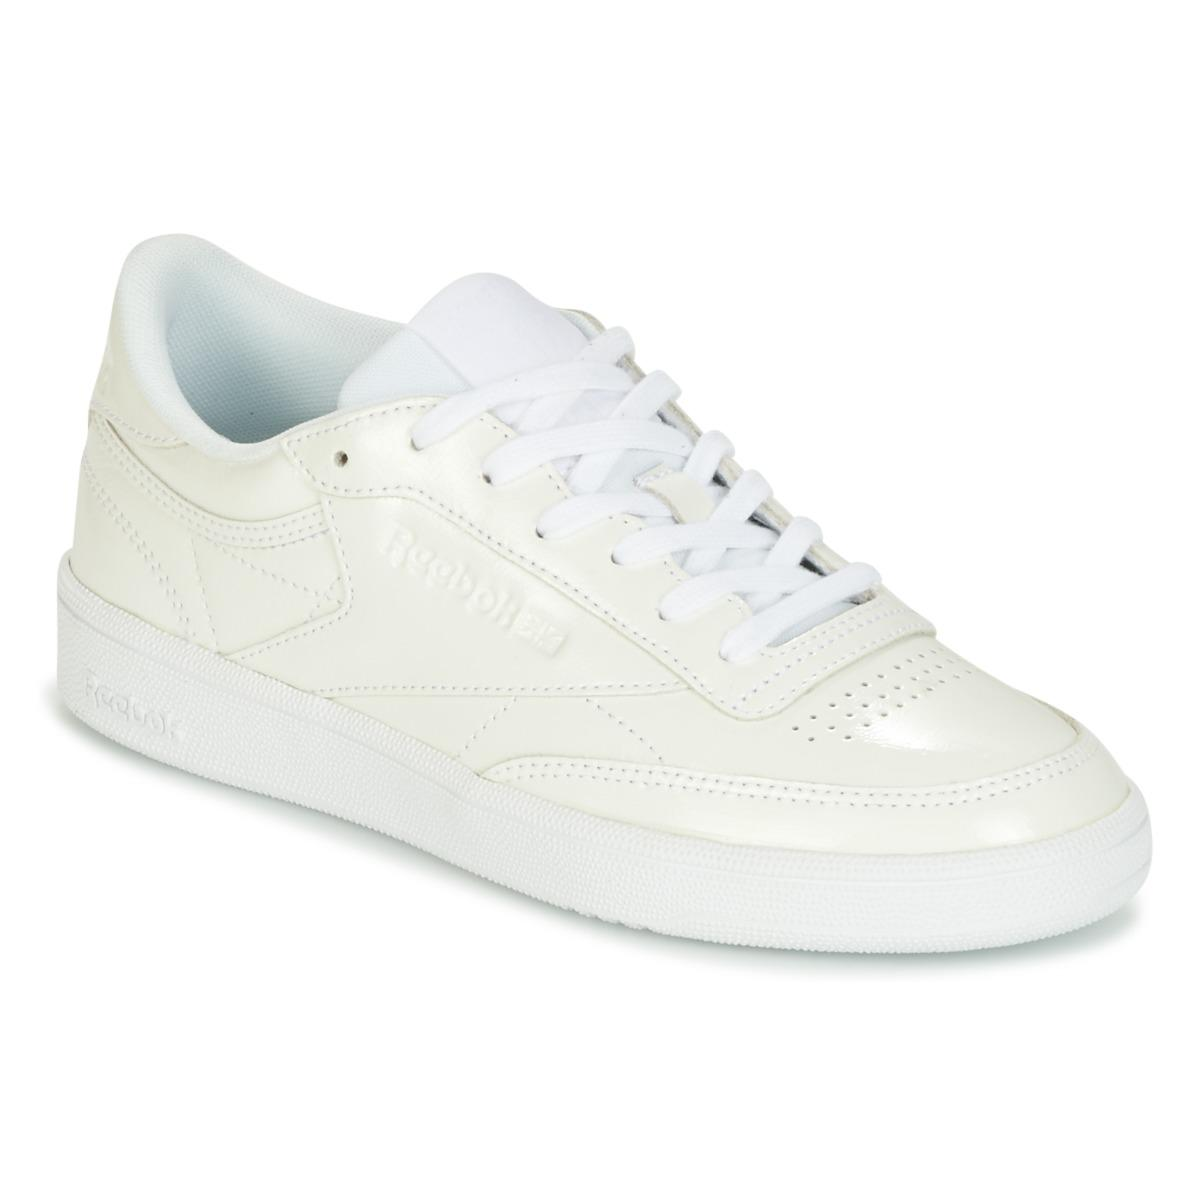 c5ee9b43b29 Reebok Club C 85 Patent Shoes (trainers) in White - Lyst